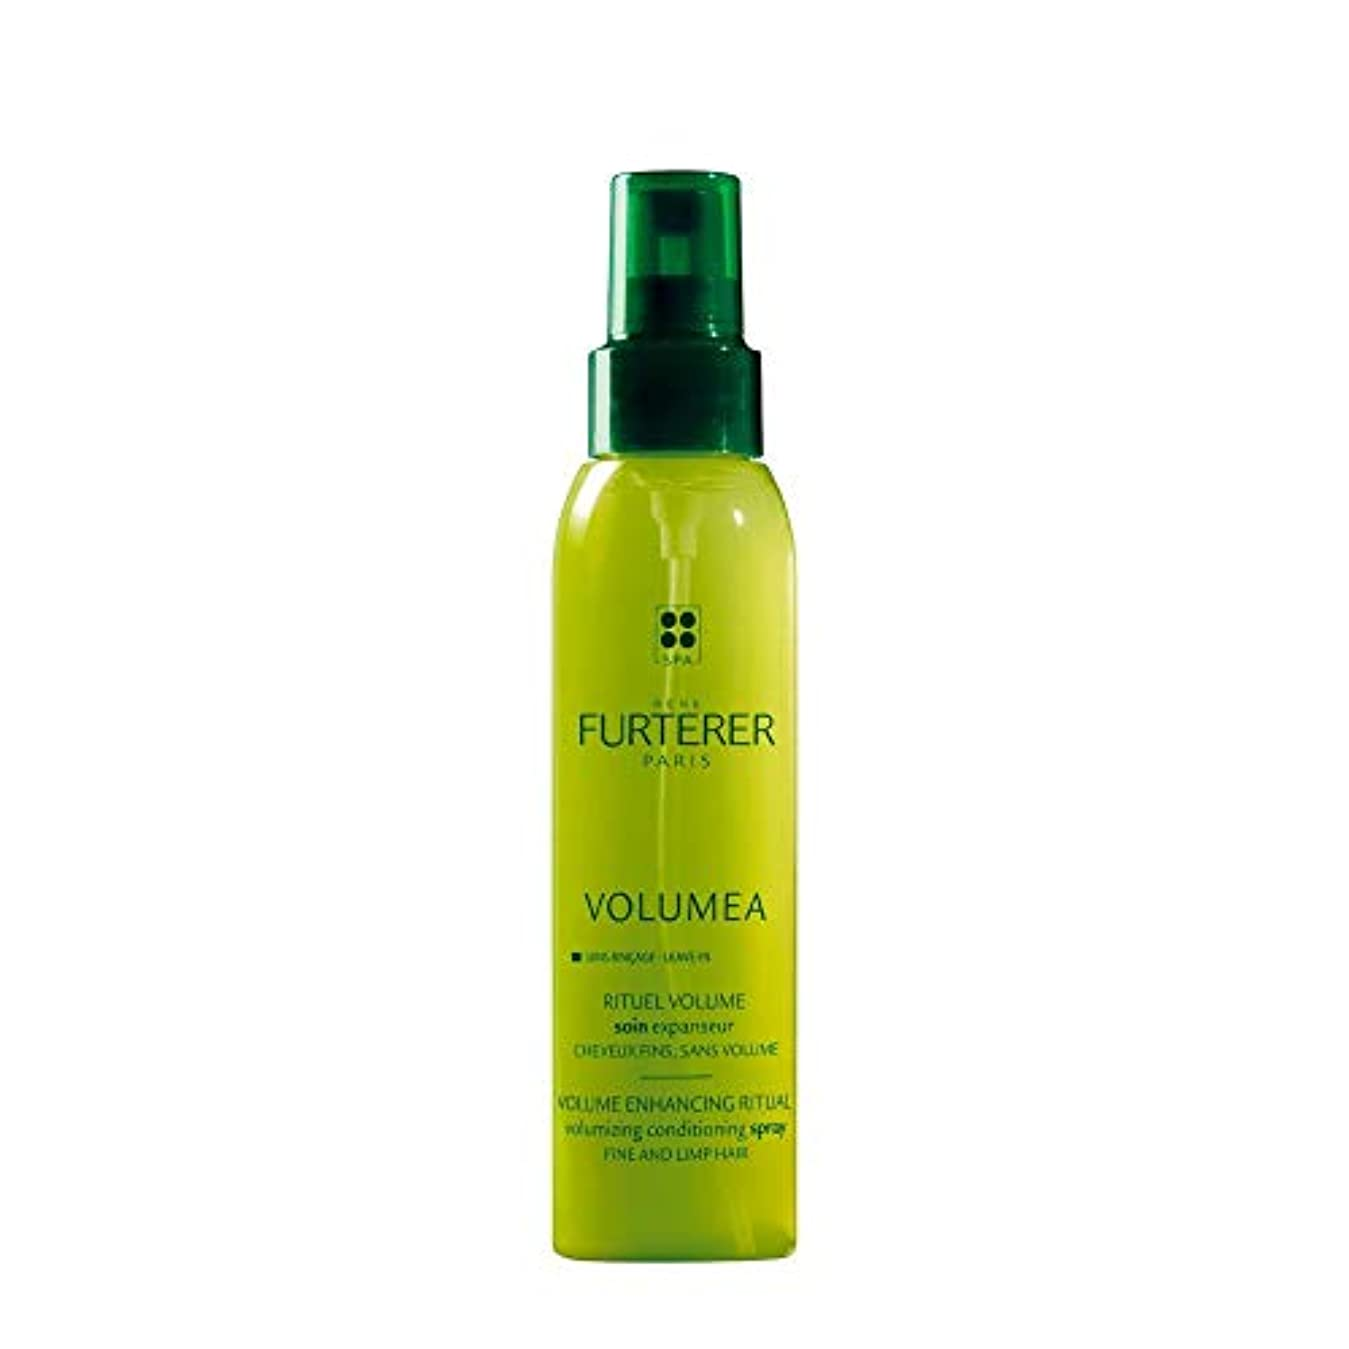 フォーク間に合わせスモッグルネ フルトレール Volumea Volume Enhancing Ritual Volumizing Conditioning Spray (Fine and Limp Hair) 125ml/4.2oz並行輸入品